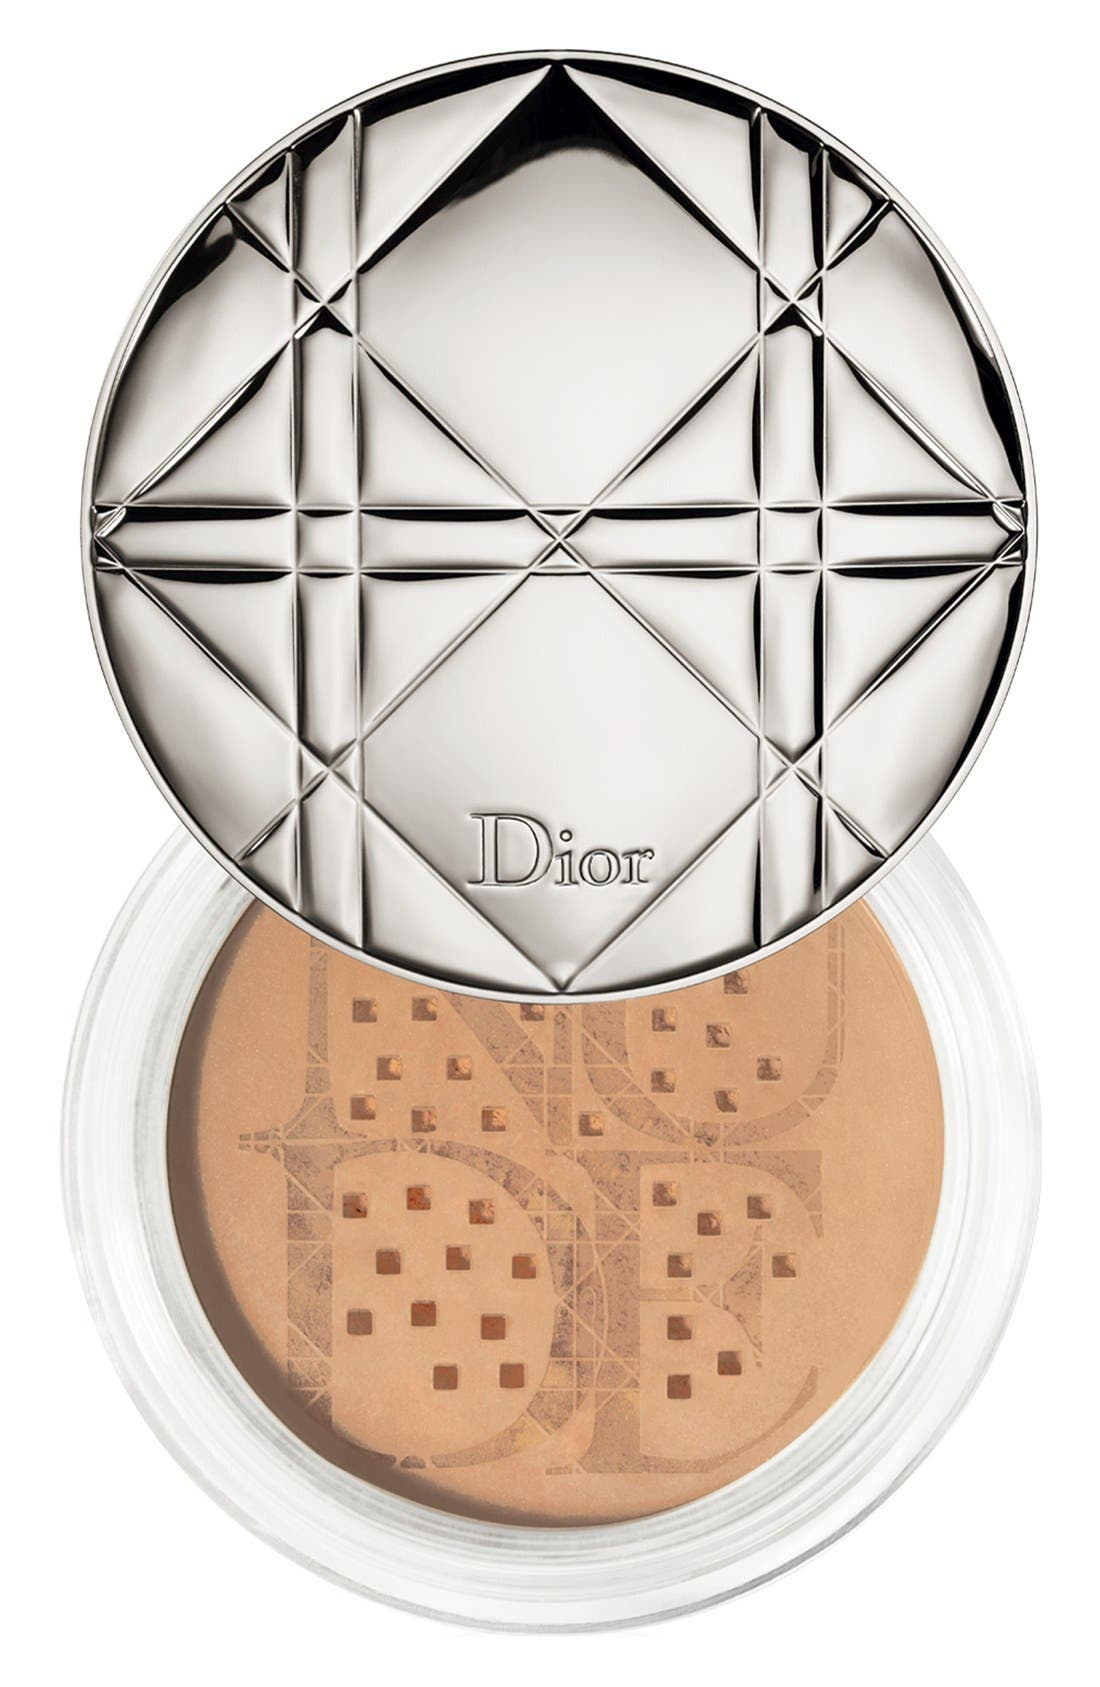 Diorskin Nude Air Healthy Glow Invisible Loose Powder,                             Main thumbnail 1, color,                             040 HONEY BEIGE